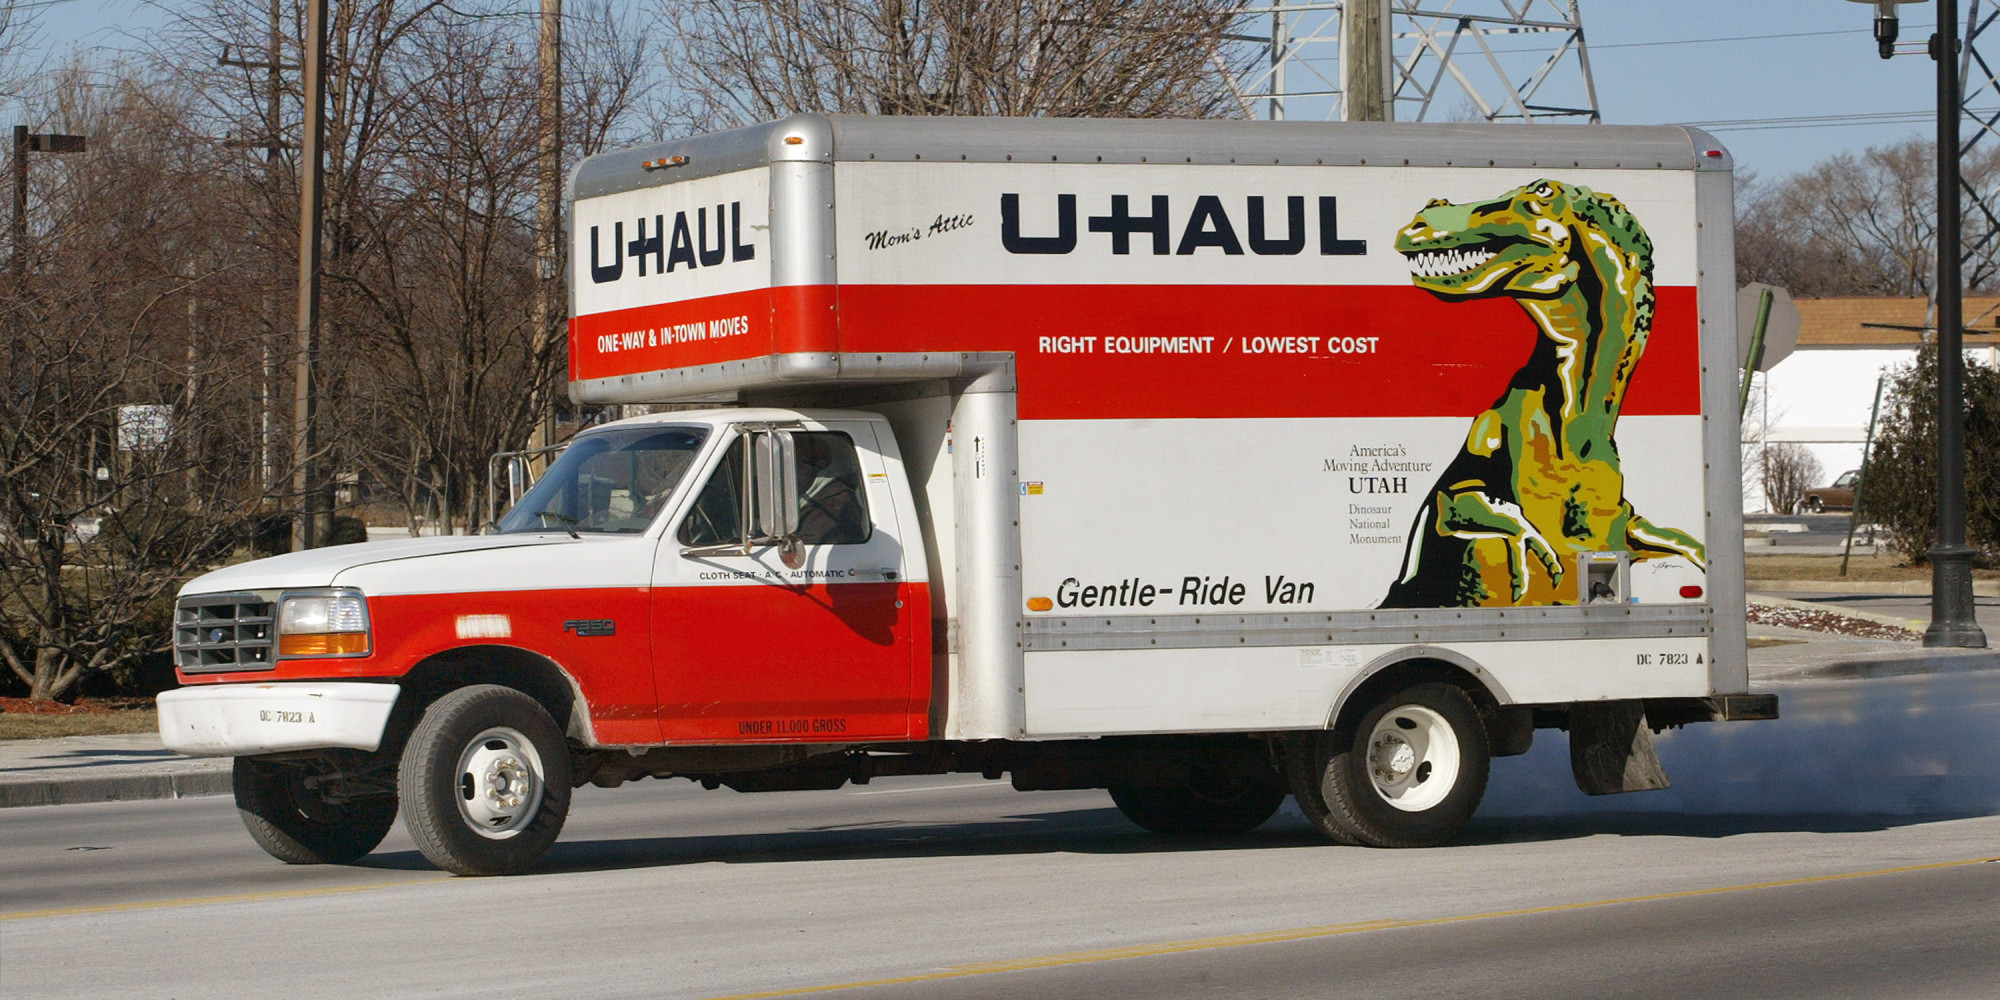 Uhaul Quote Here's What A Lesbian Shouldn't Bring On A First Datea Uhaul